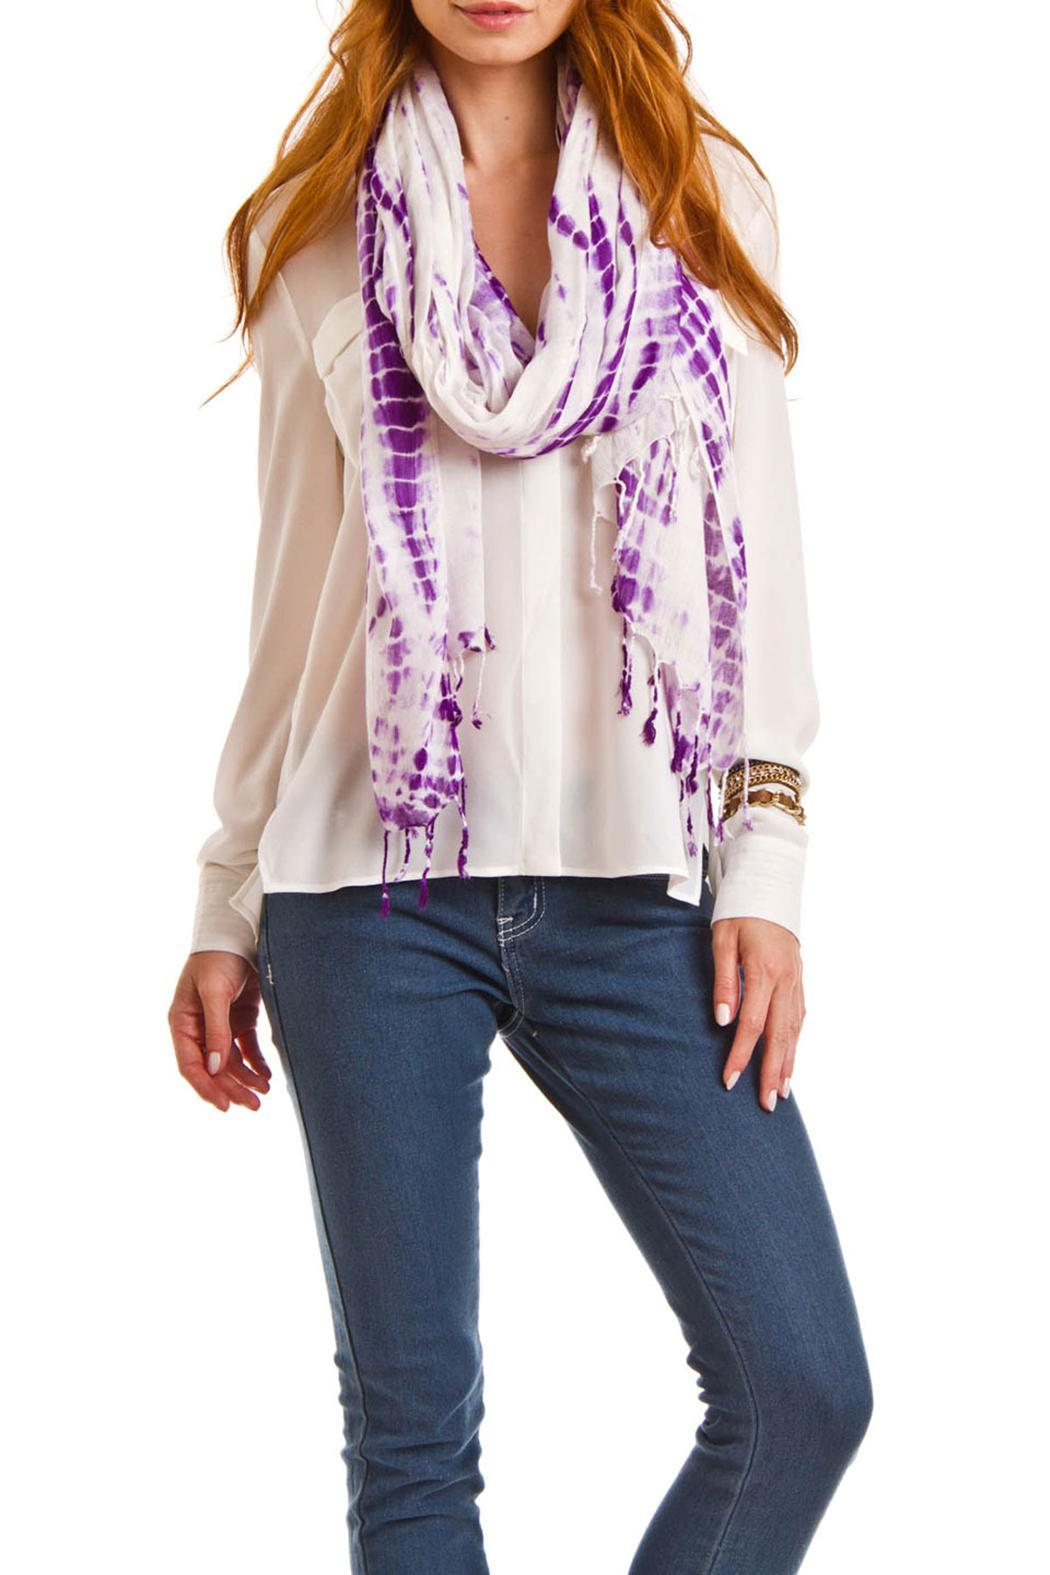 Violet Del Mar Hand Tie-Dye Scarf - Front Full Image